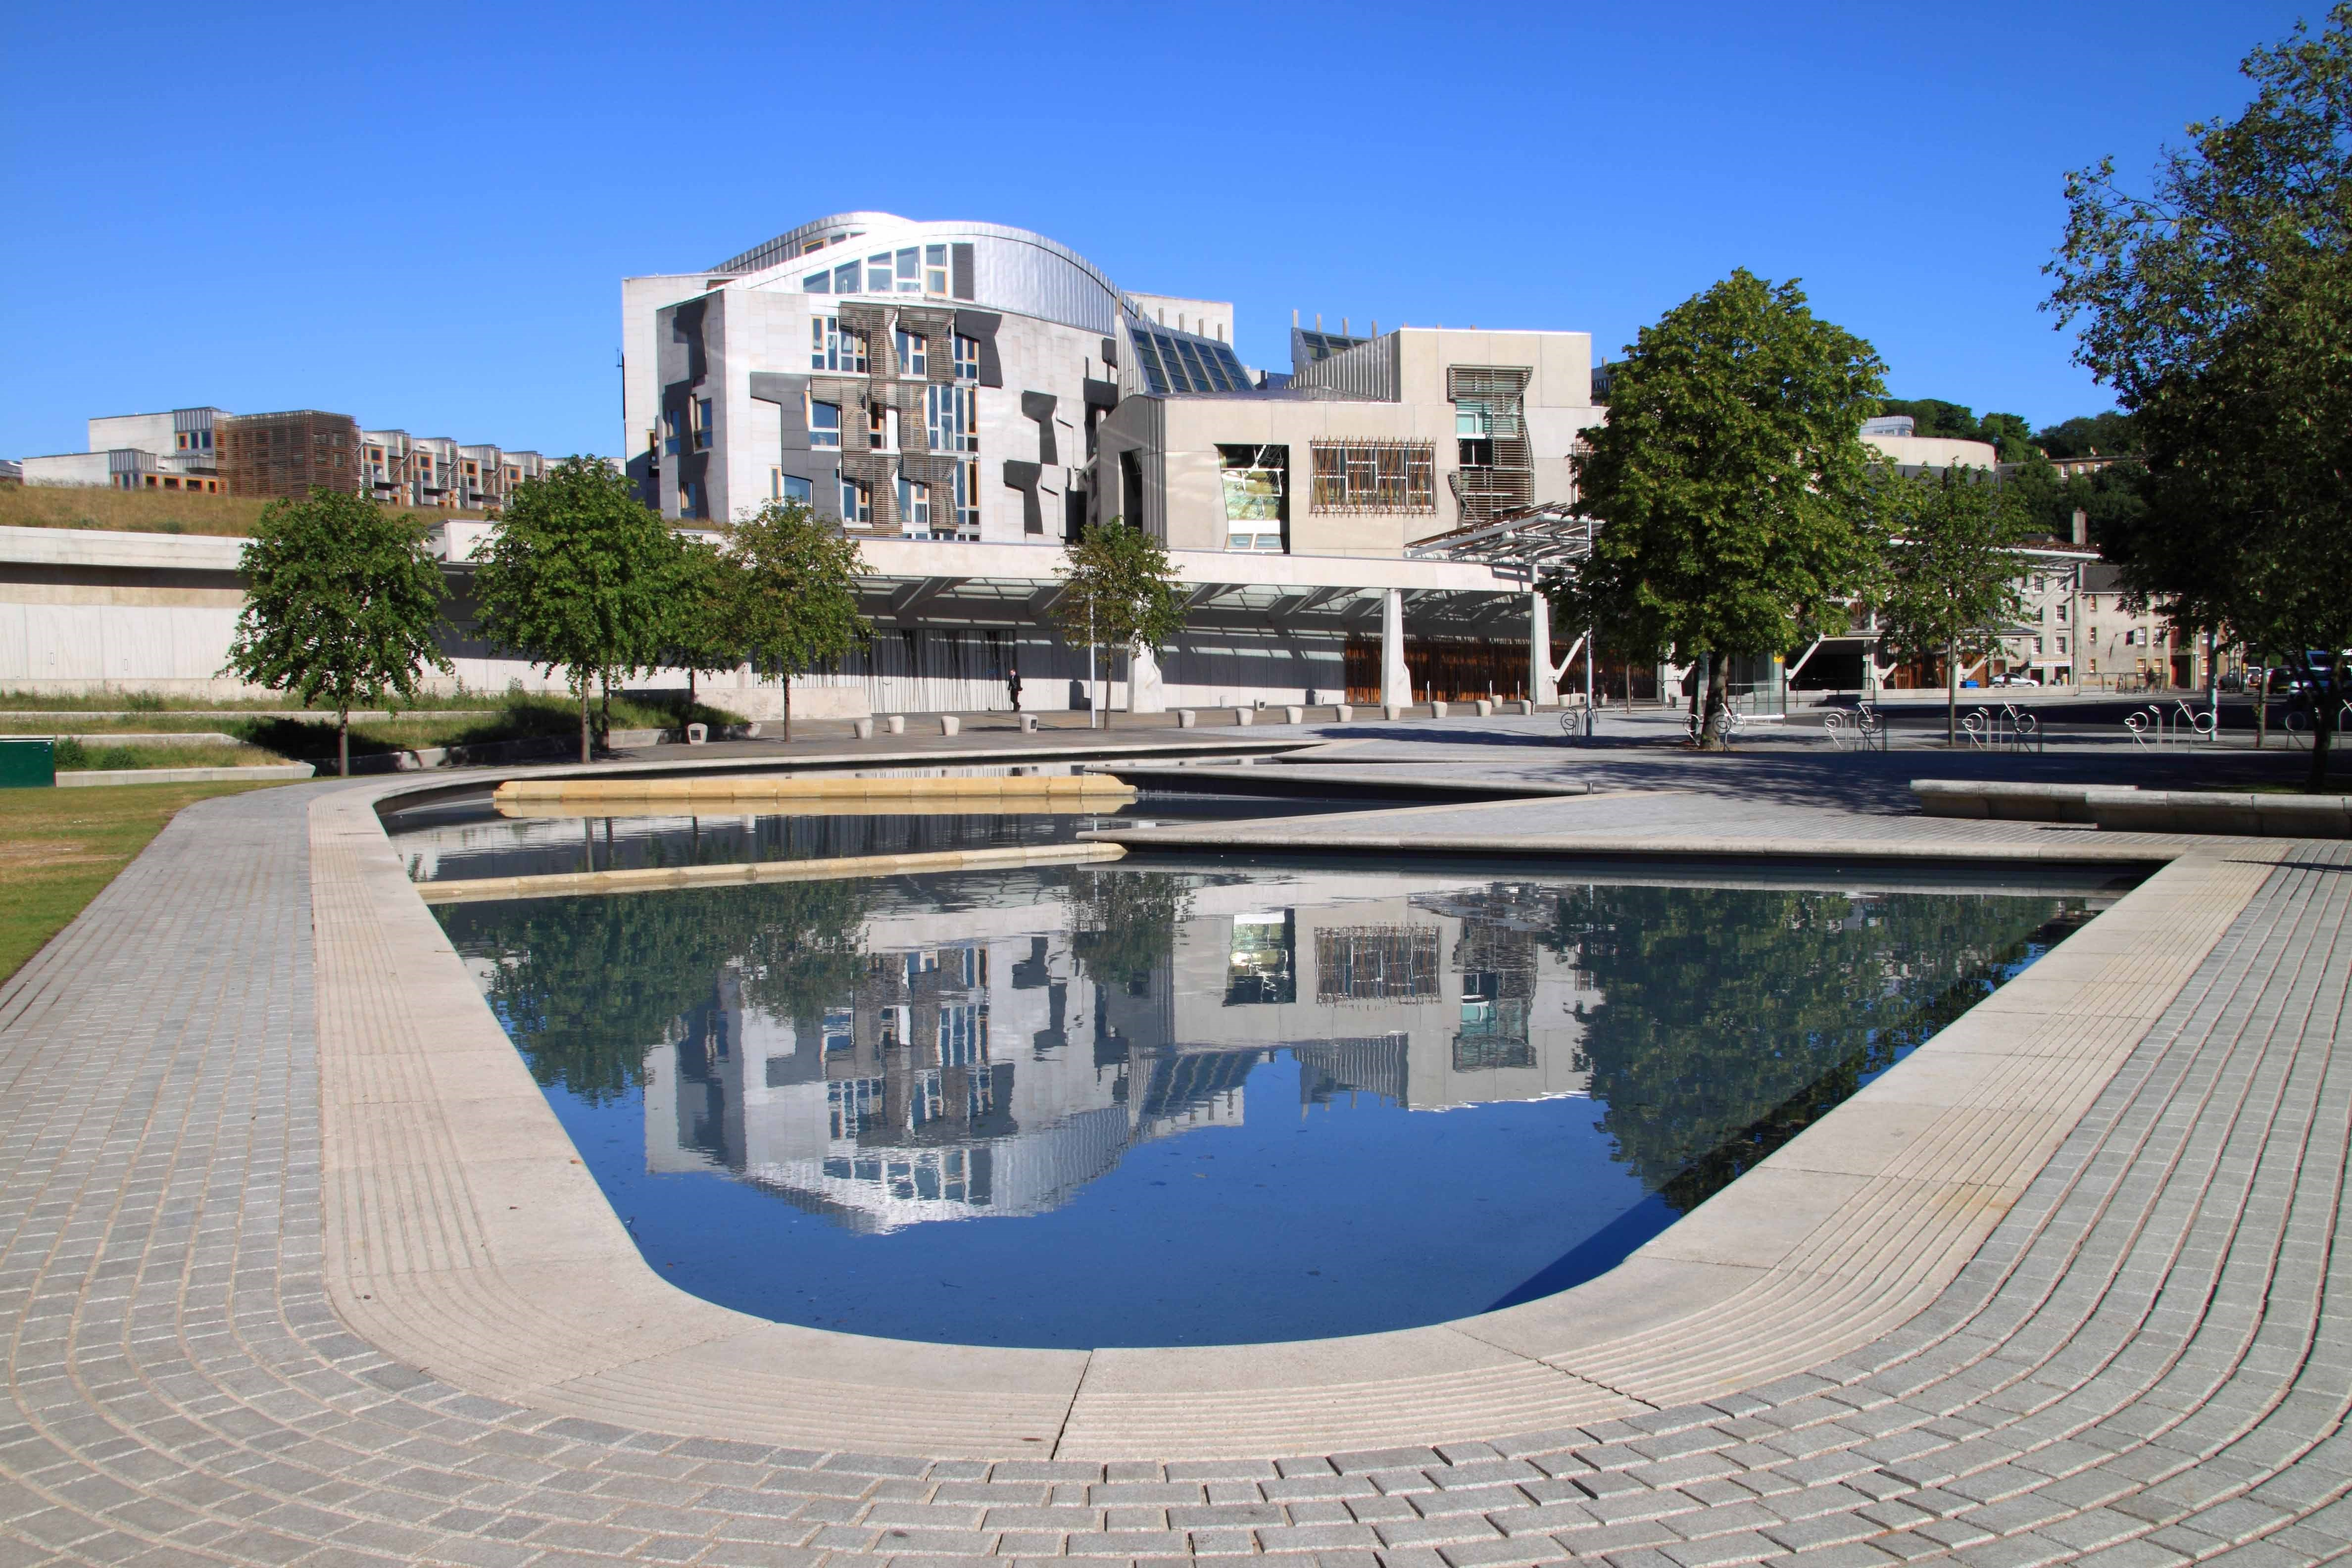 Scottish parliament viewed across a pond